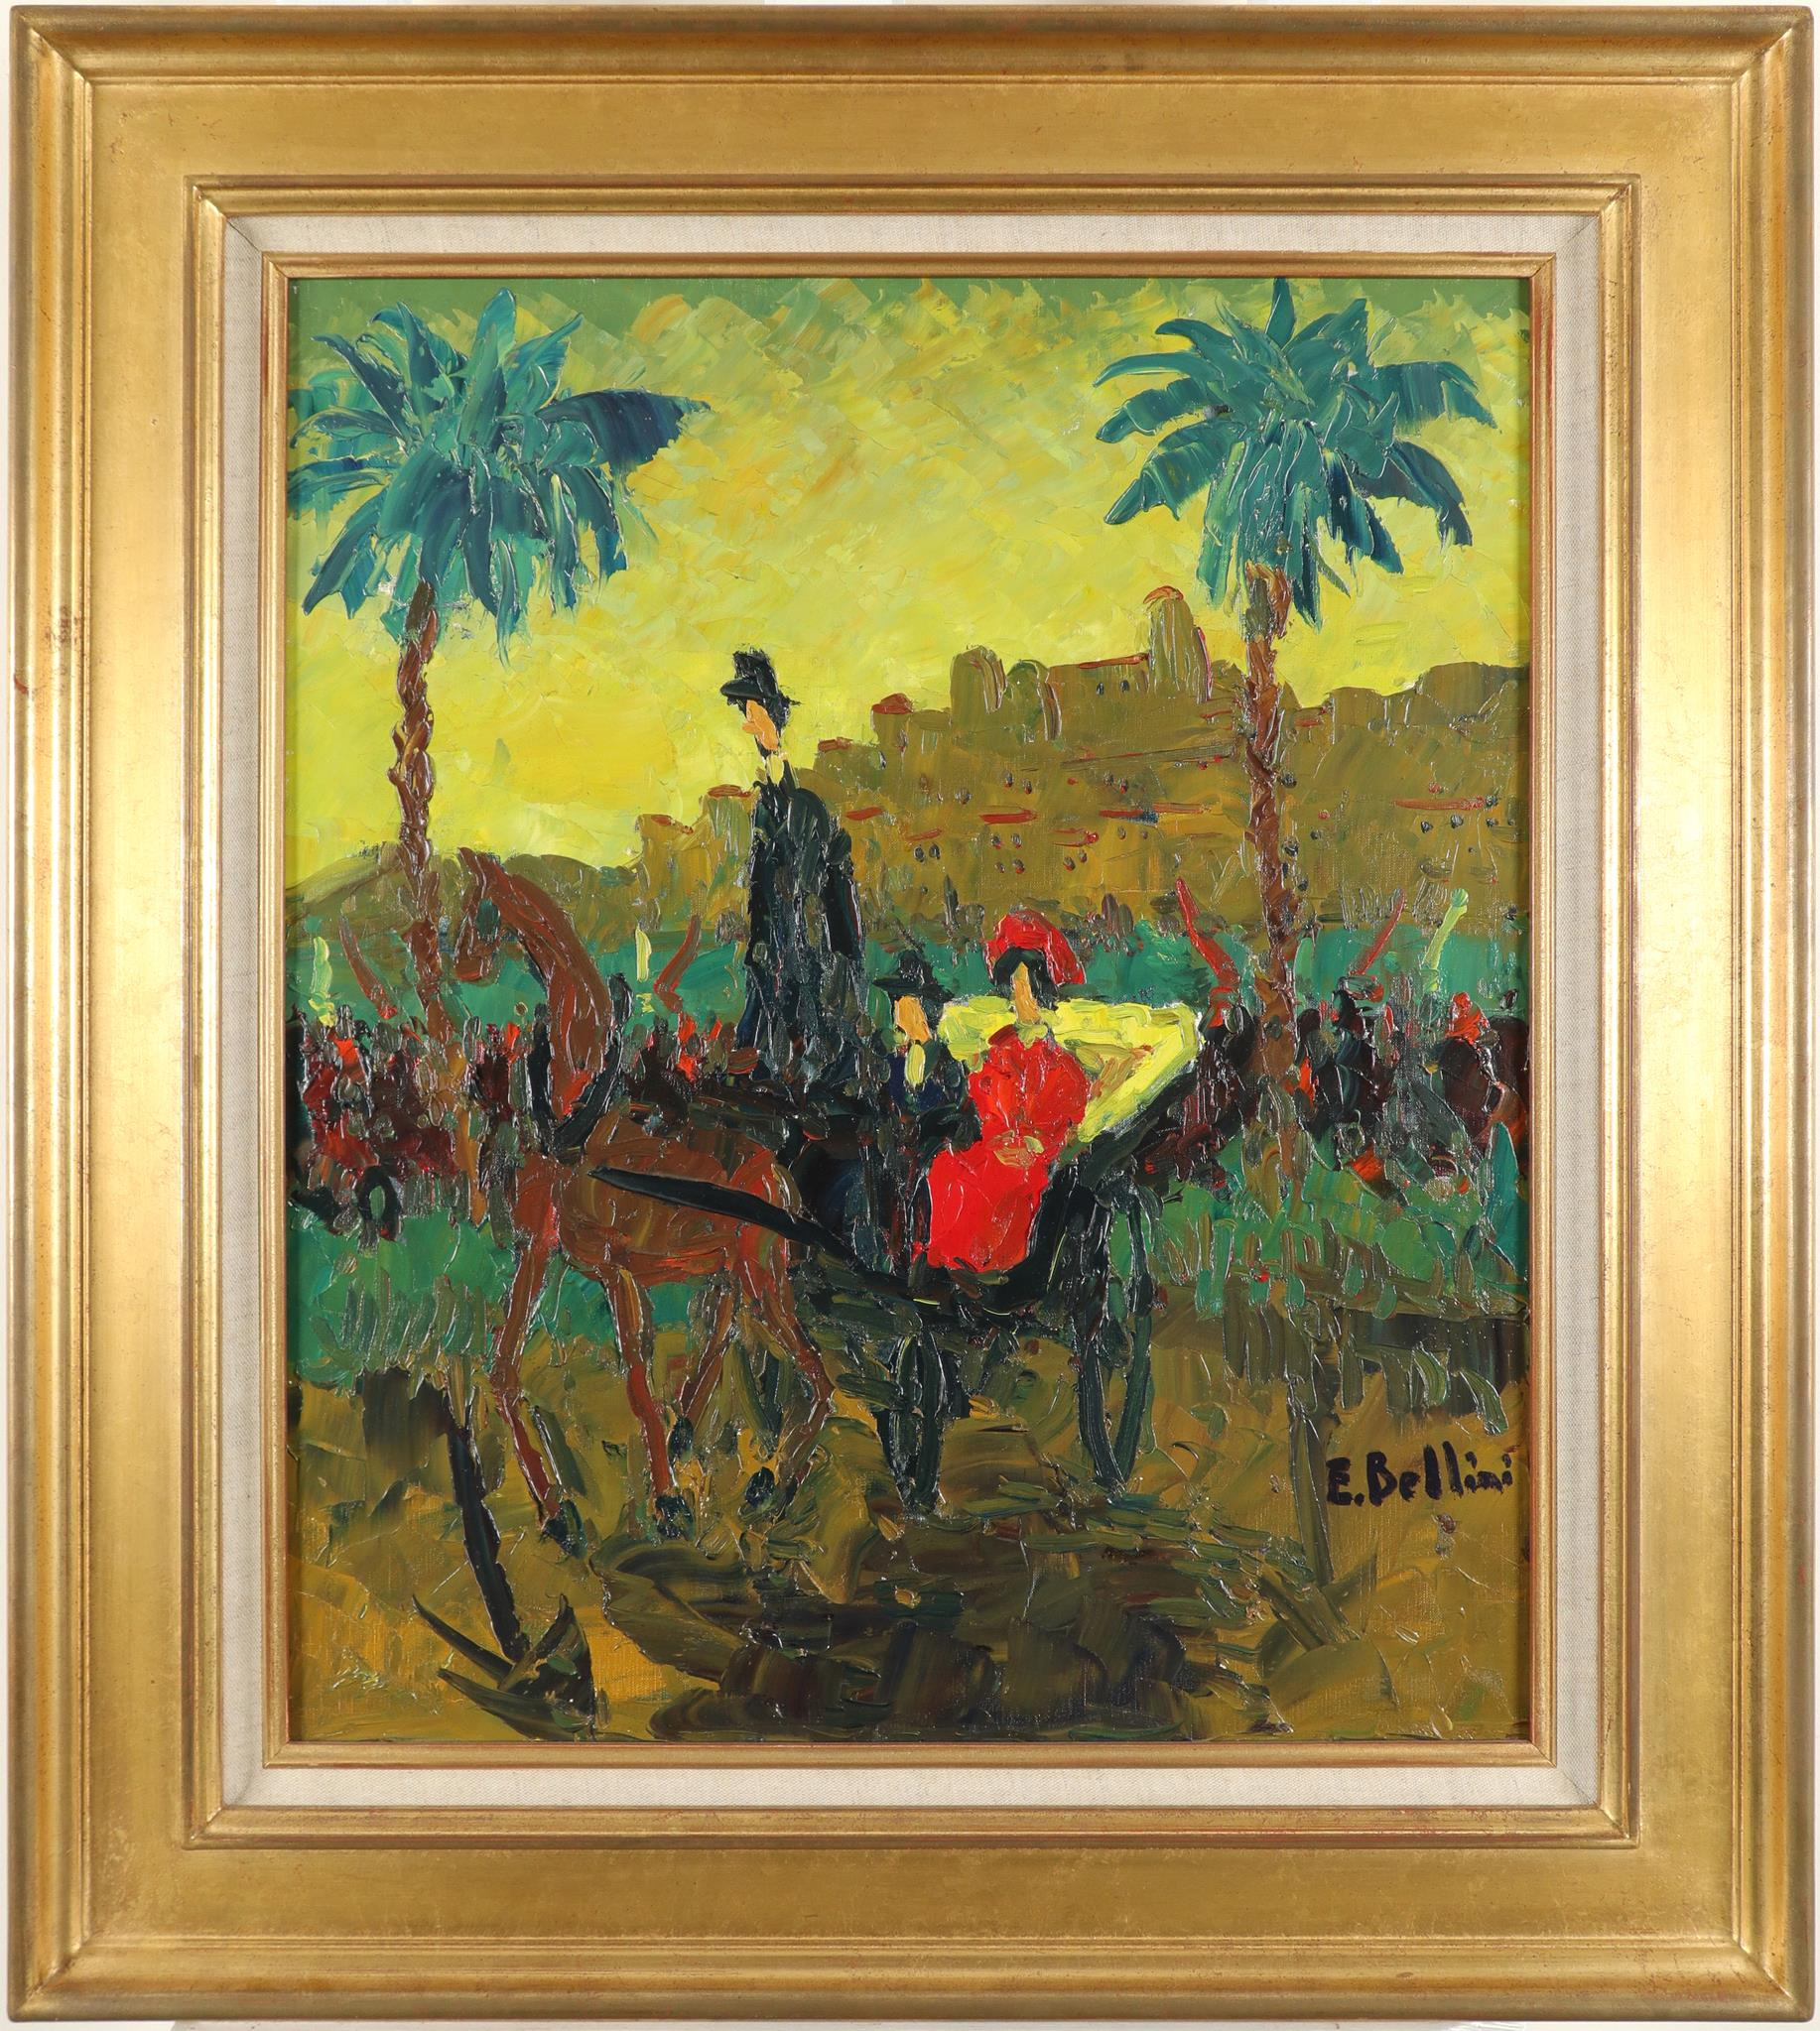 ‡Emmanuel Bellini (French 1904-1989) Calèche à Cannes Signed E.Bellini (lower right), and signed and - Image 2 of 3